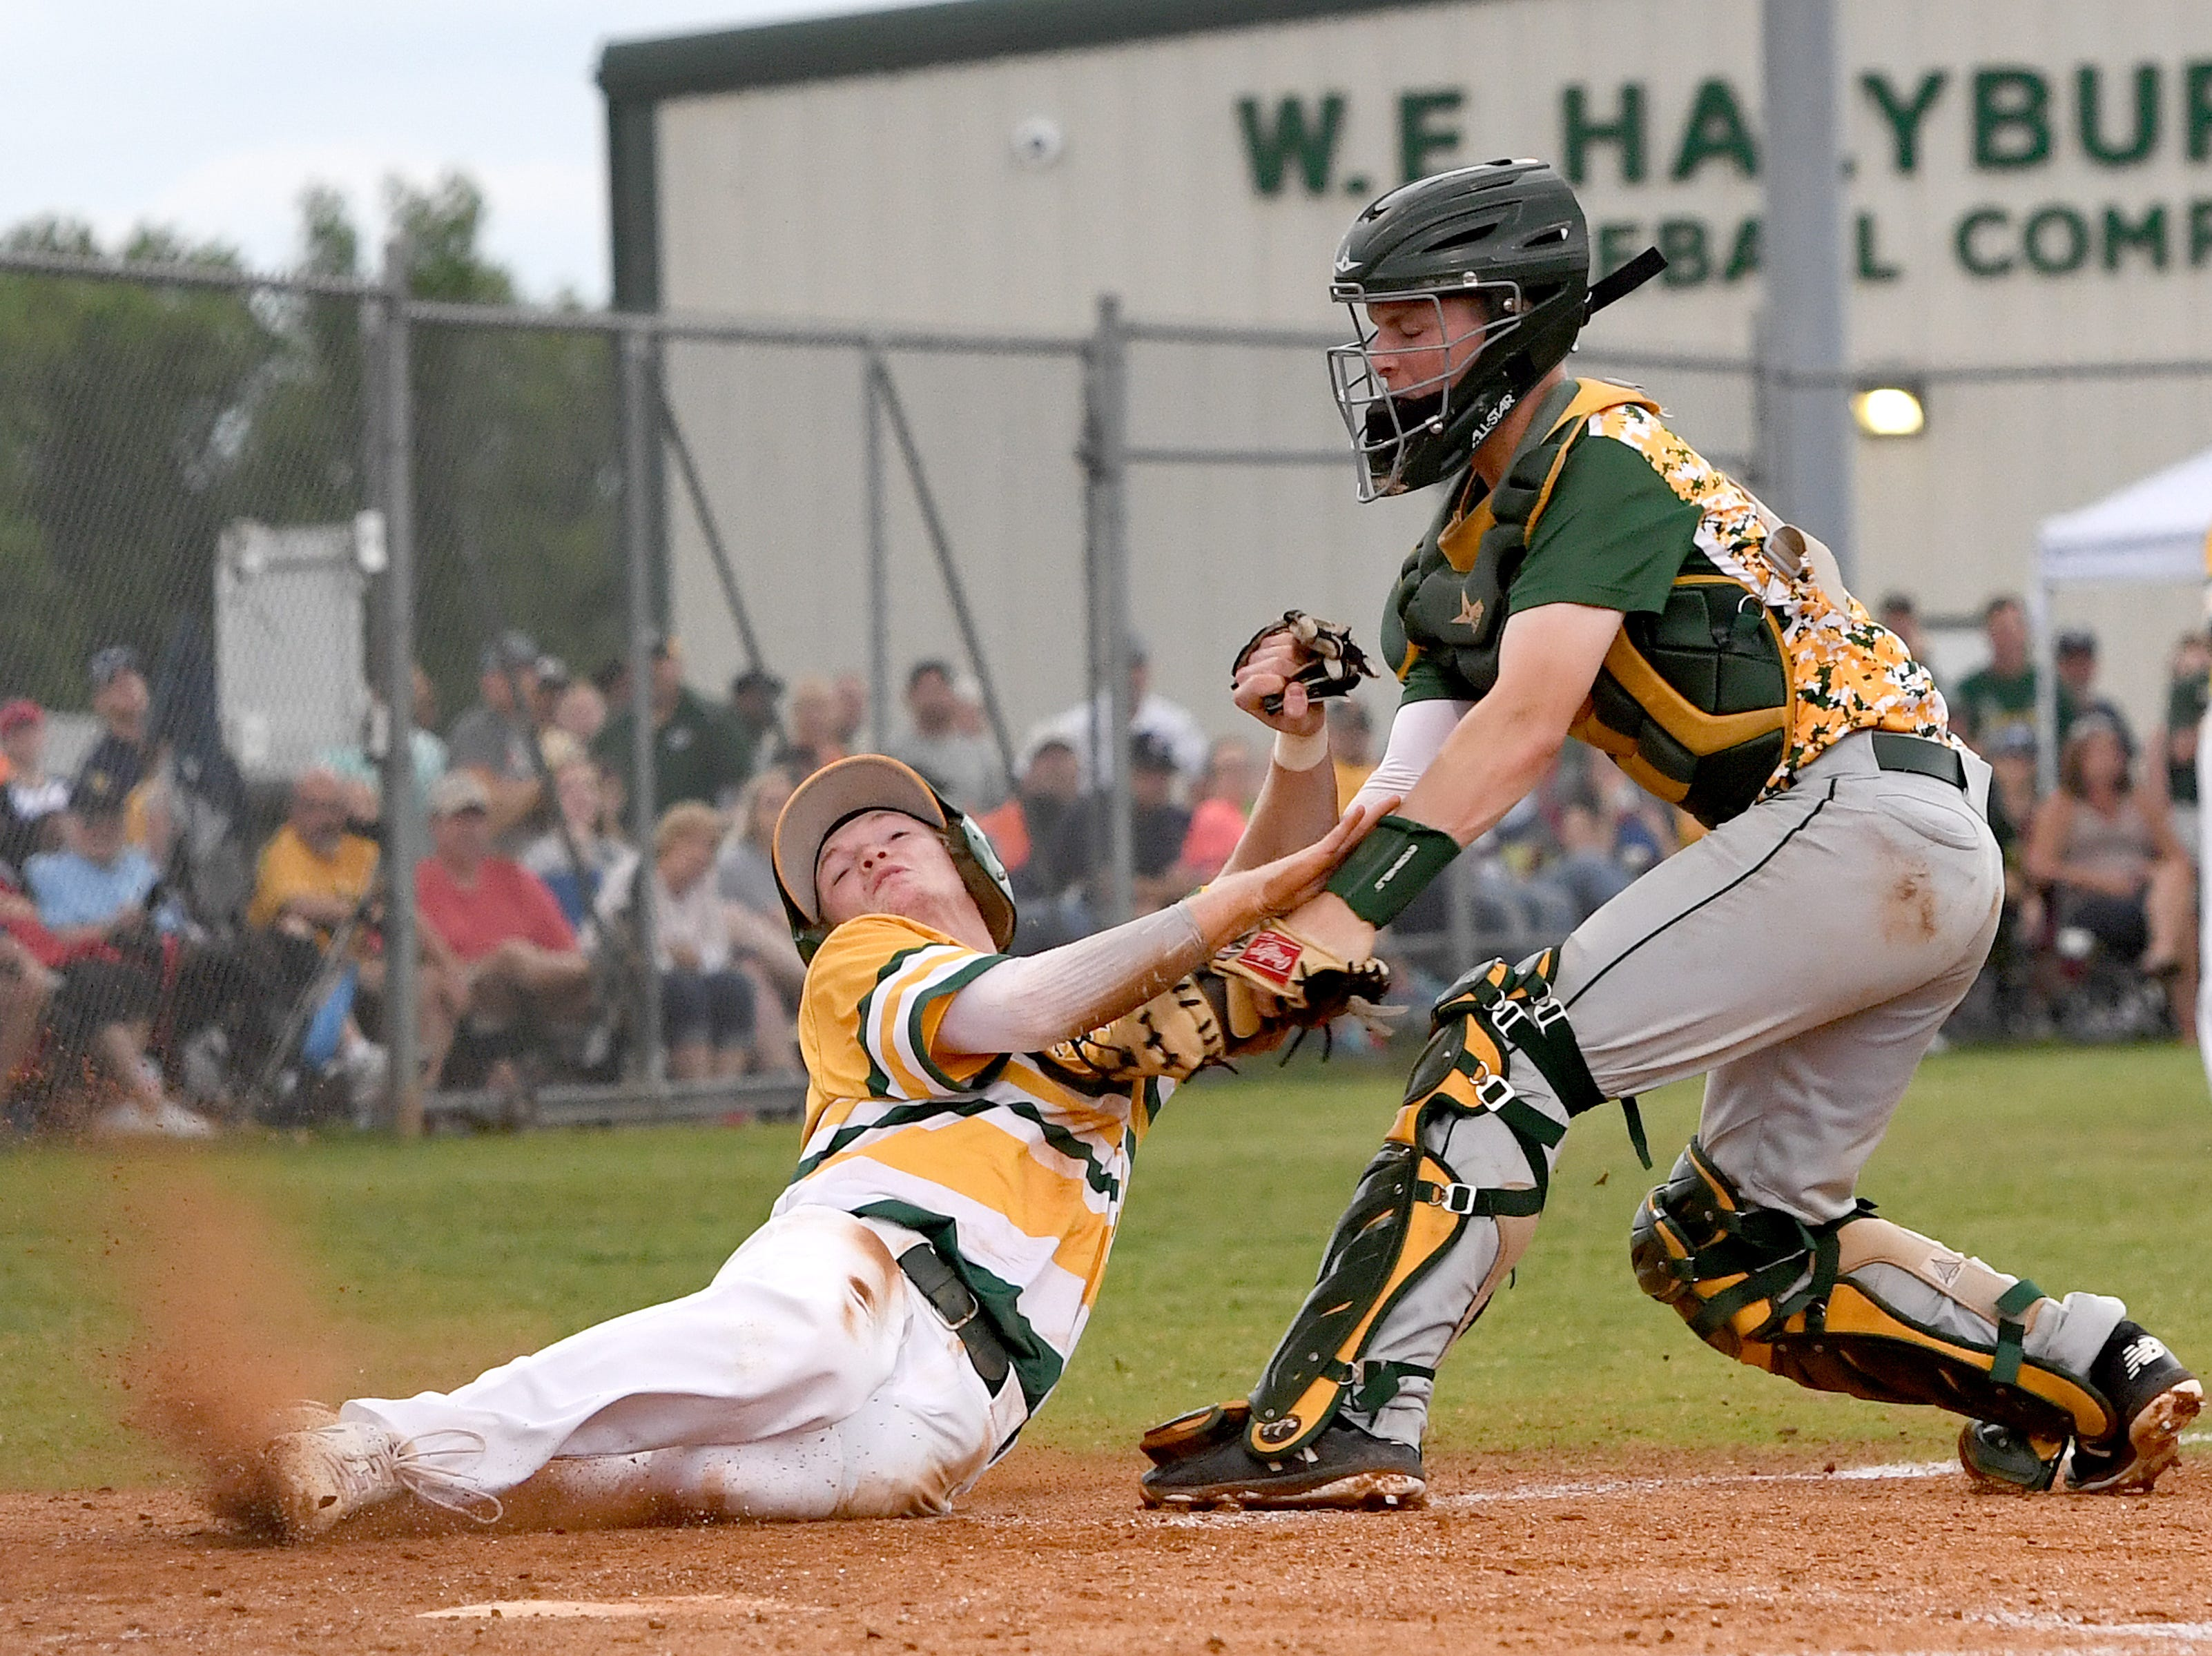 Reynolds catcher Cooper Ingle tags out Crest's Jack Millen as he slides into home plate in the third game of the NCHSAA Western Regional Championship series at Crest High School in Shelby on Saturday, May 26, 2018.